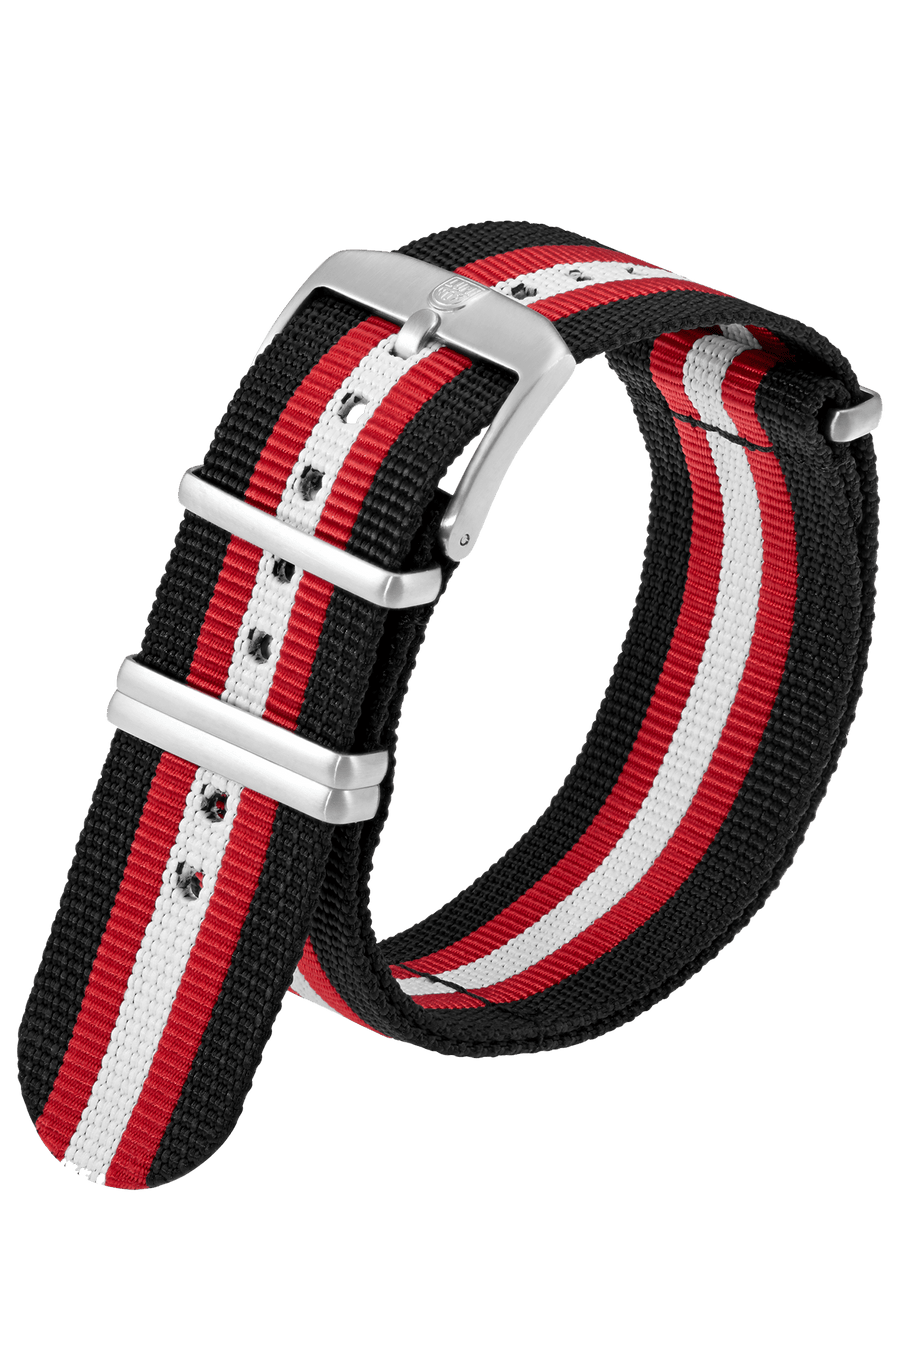 Black Webbing Strap With Red/White Stripe - 23MM